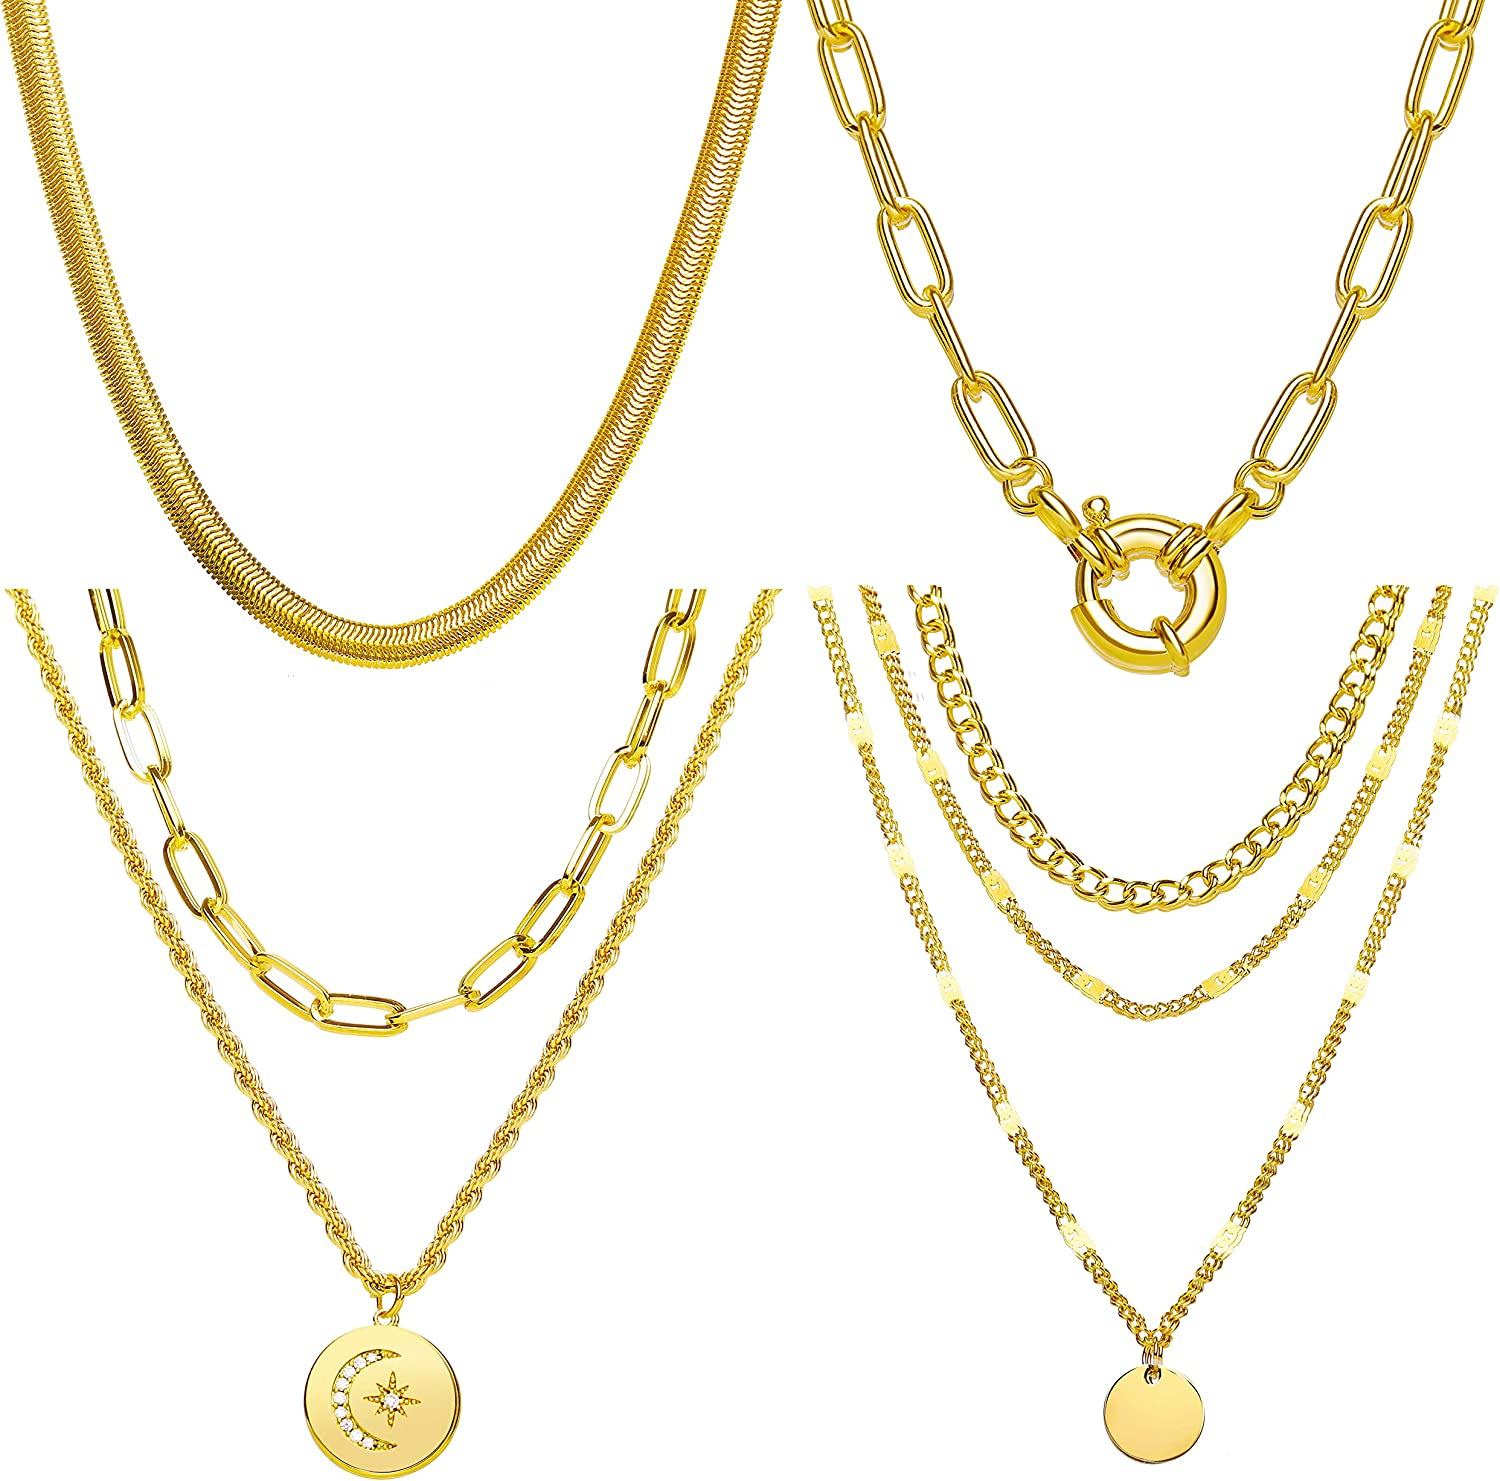 4 Pcs Gold Chain Necklaces for Women Layered Gold Necklace Set Pendant Paperclip Snake Chain Necklace for Girls Jewelry